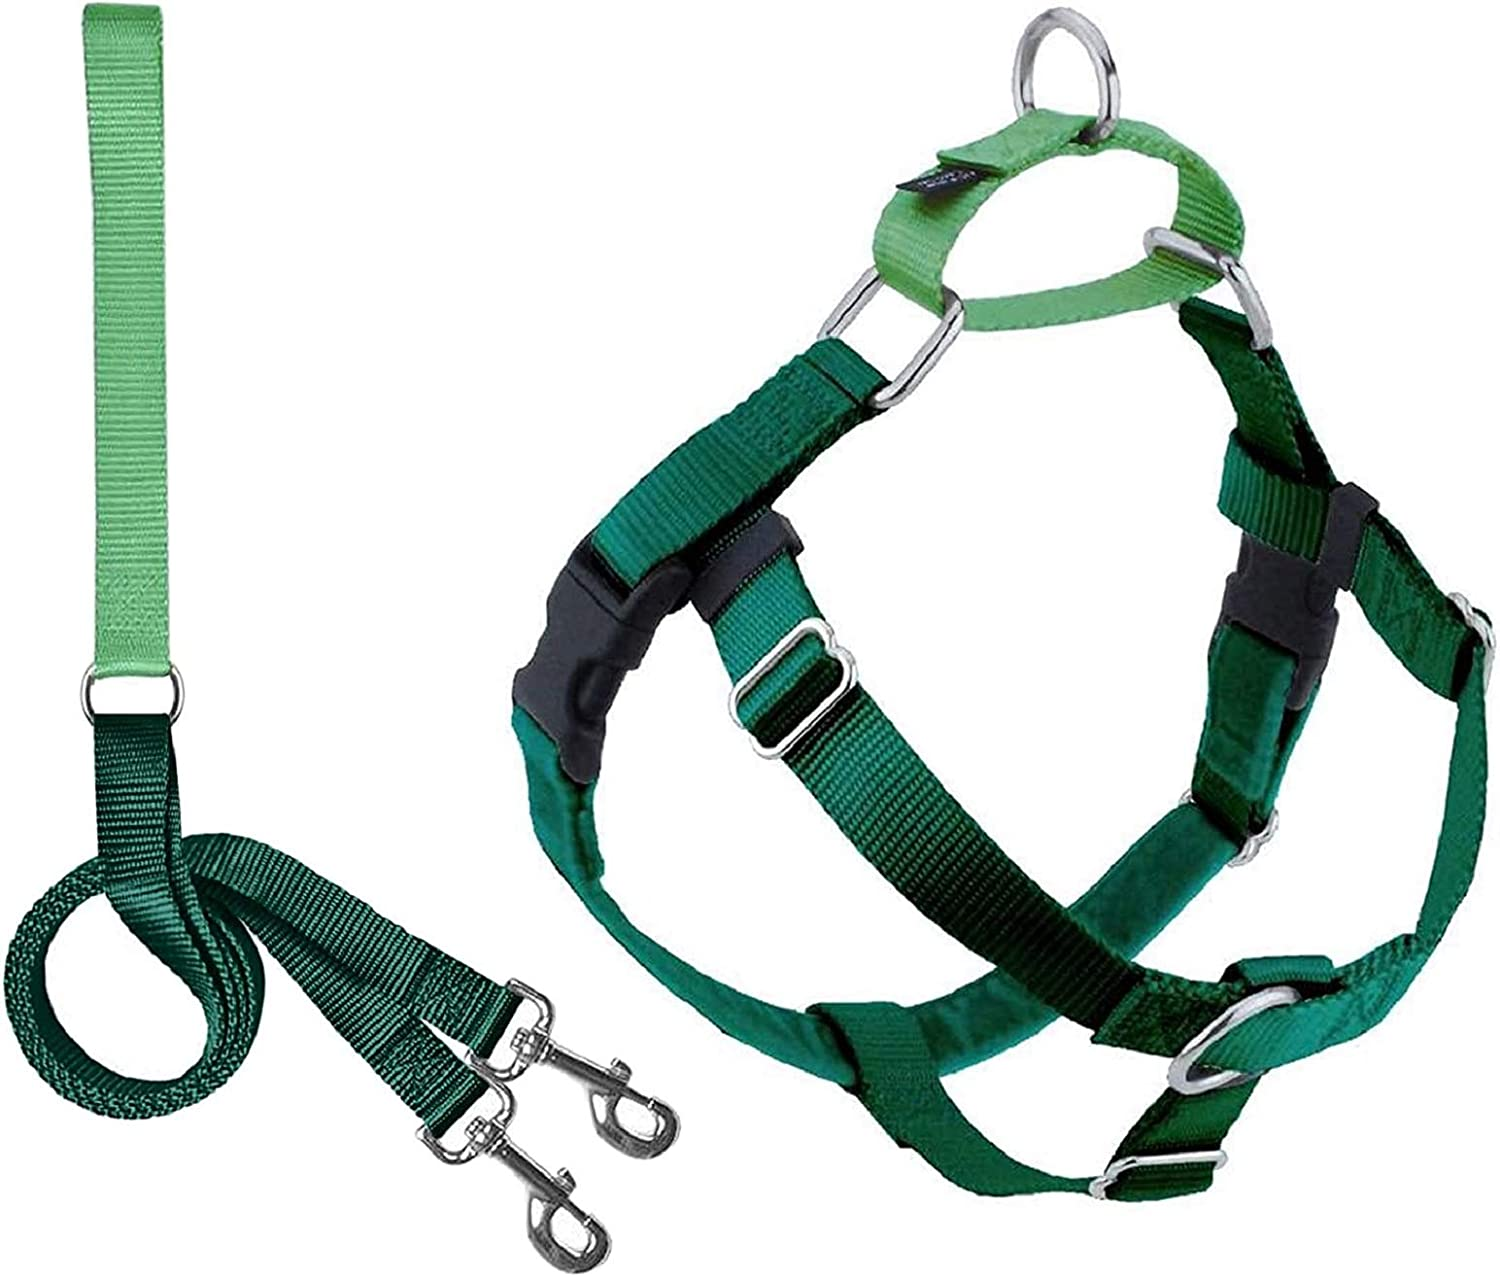 2 Hounds Design Freedom Free shipping anywhere in the Bargain sale nation No Adjustable Gentle Dog Pull Harness